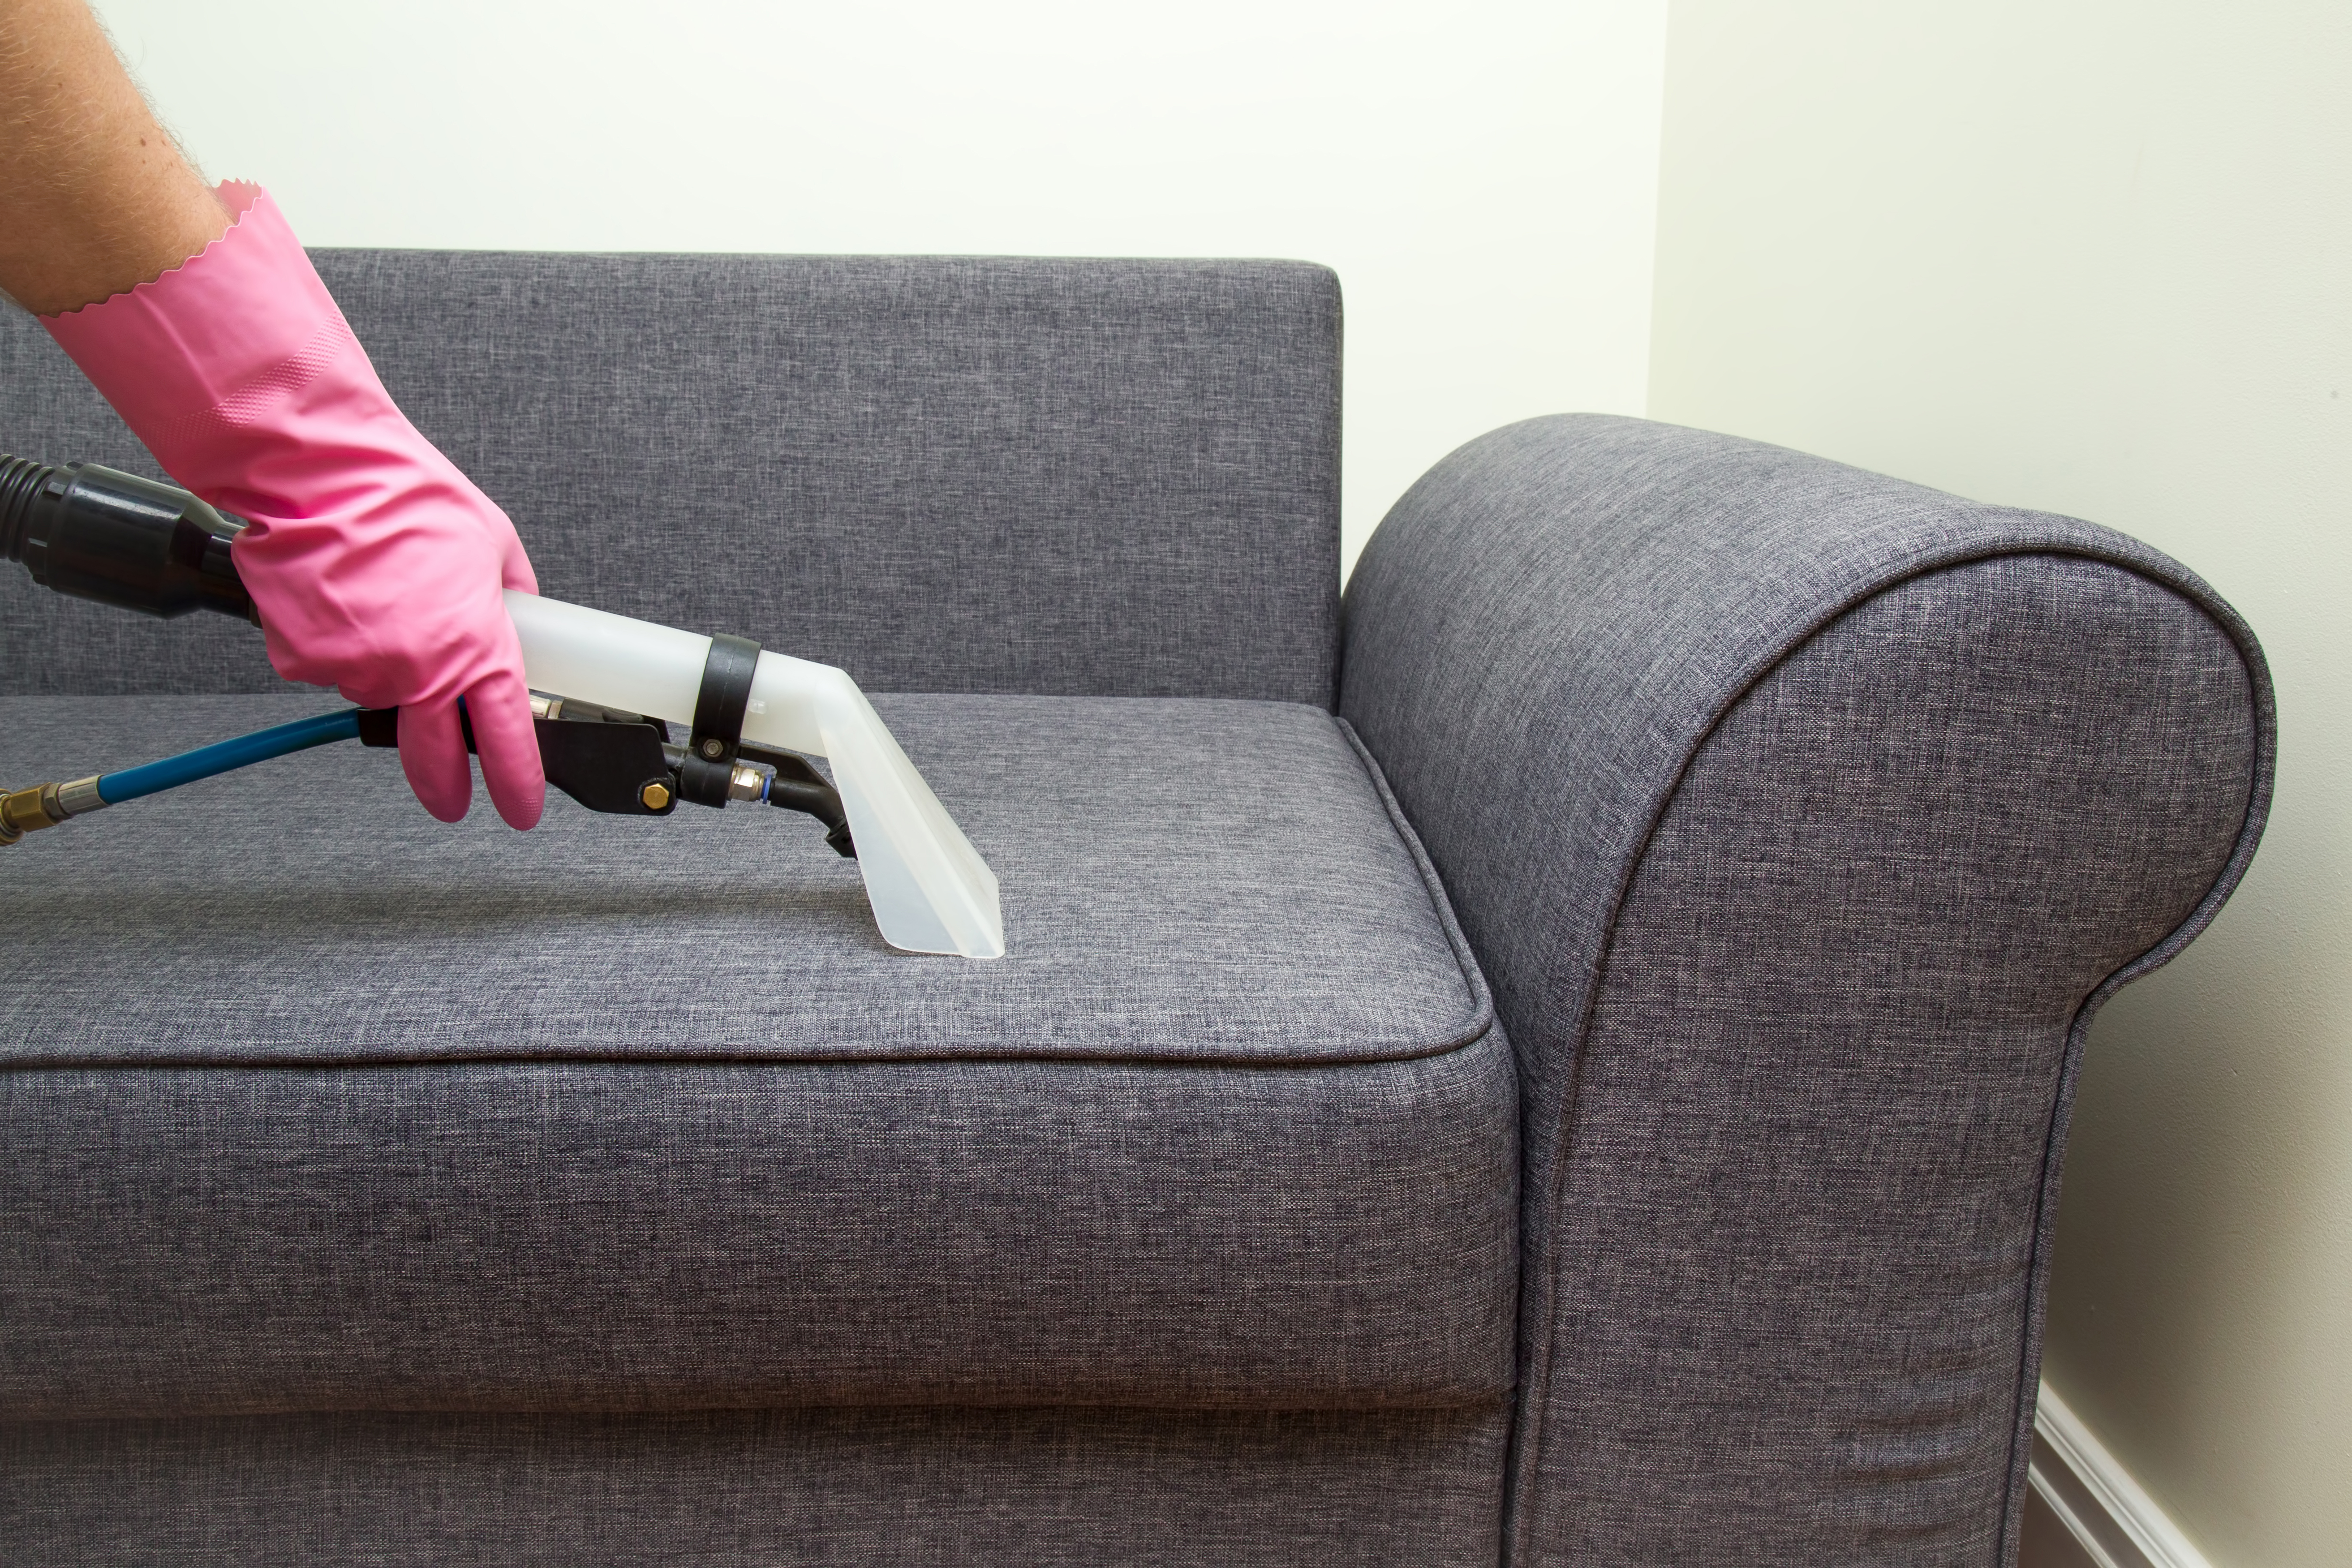 Upholstered furniture professionally chemical cleaning in hotel and house.